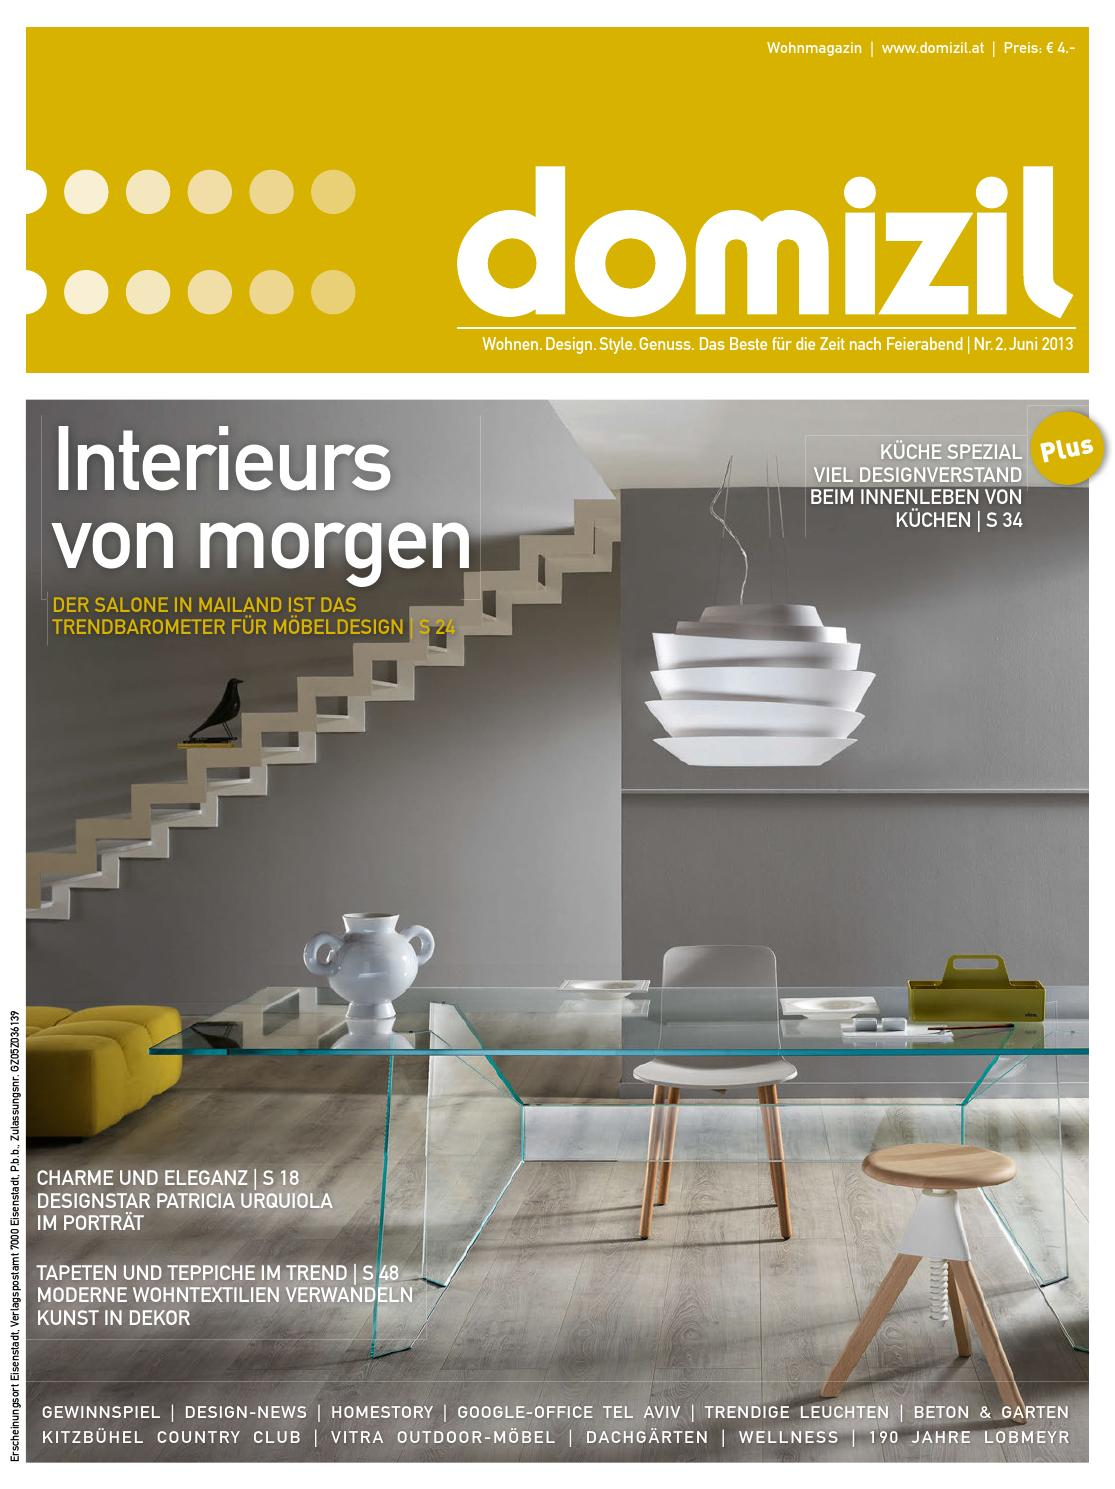 Domizil 2013 By Seier GmbH   Issuu